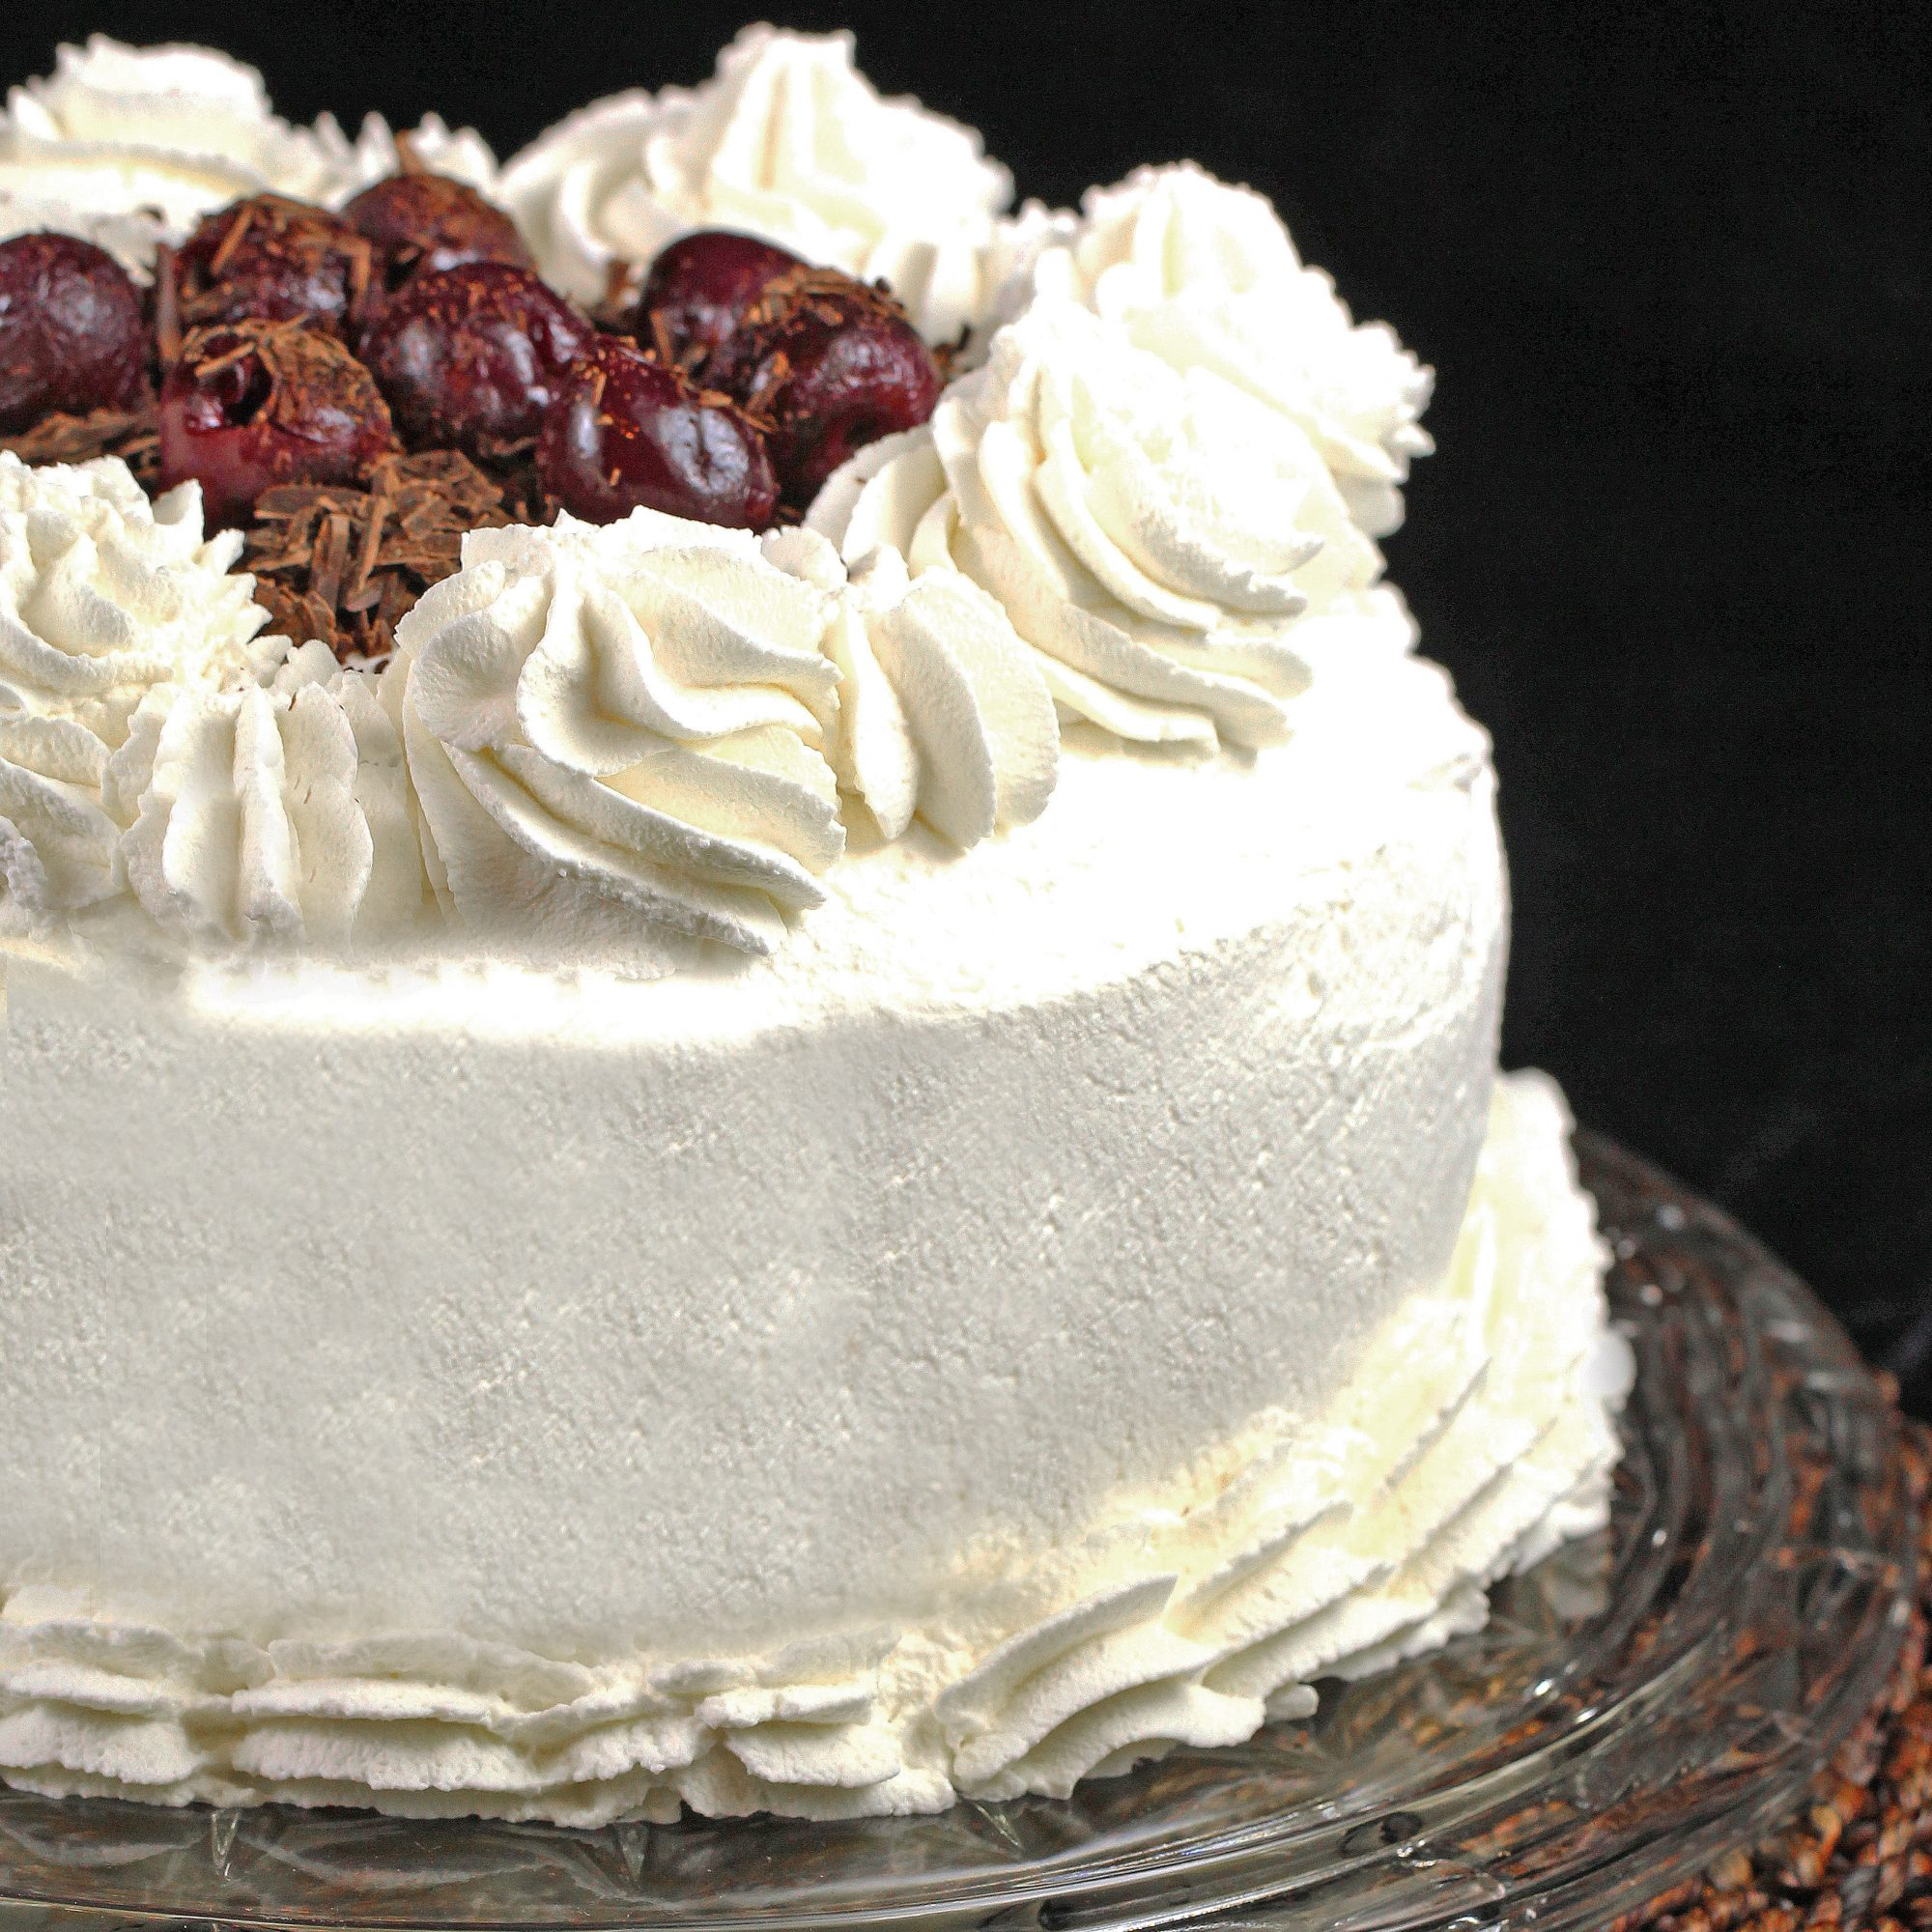 side view of a smooth white cream-coated Black Forest cake with rosettes of whipped cream and dark cherries in the center